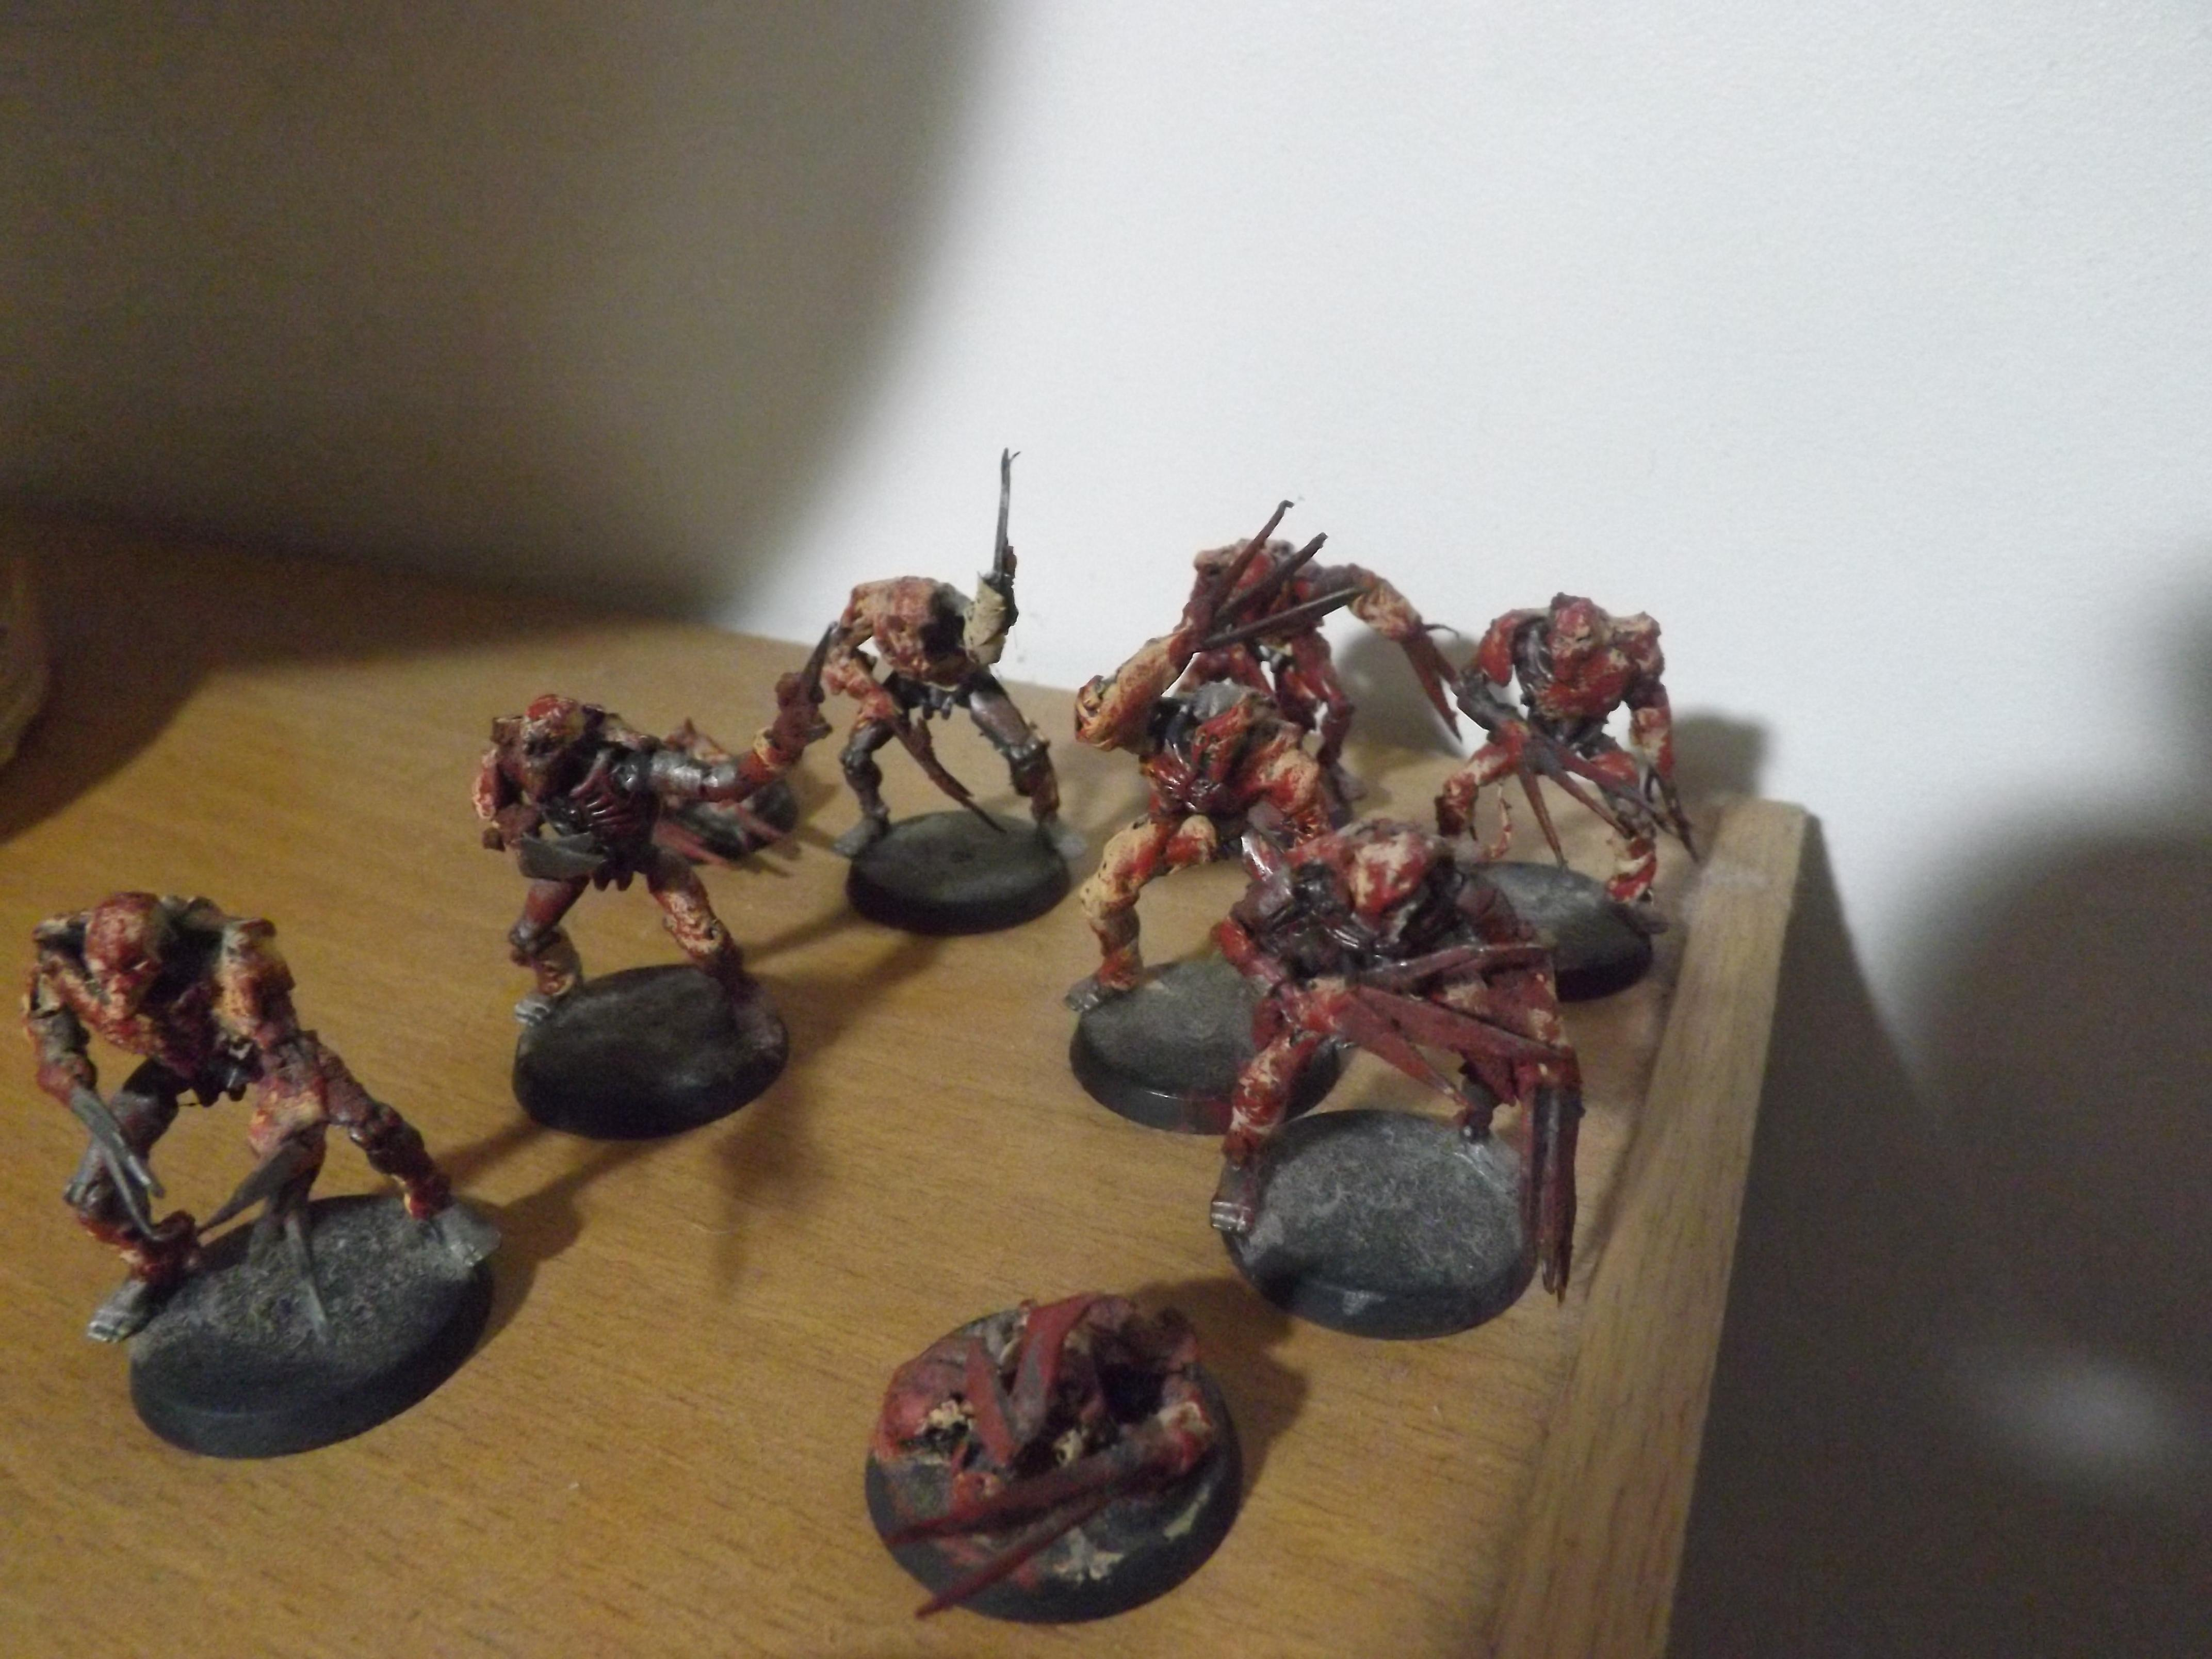 Budget Flayed Ones